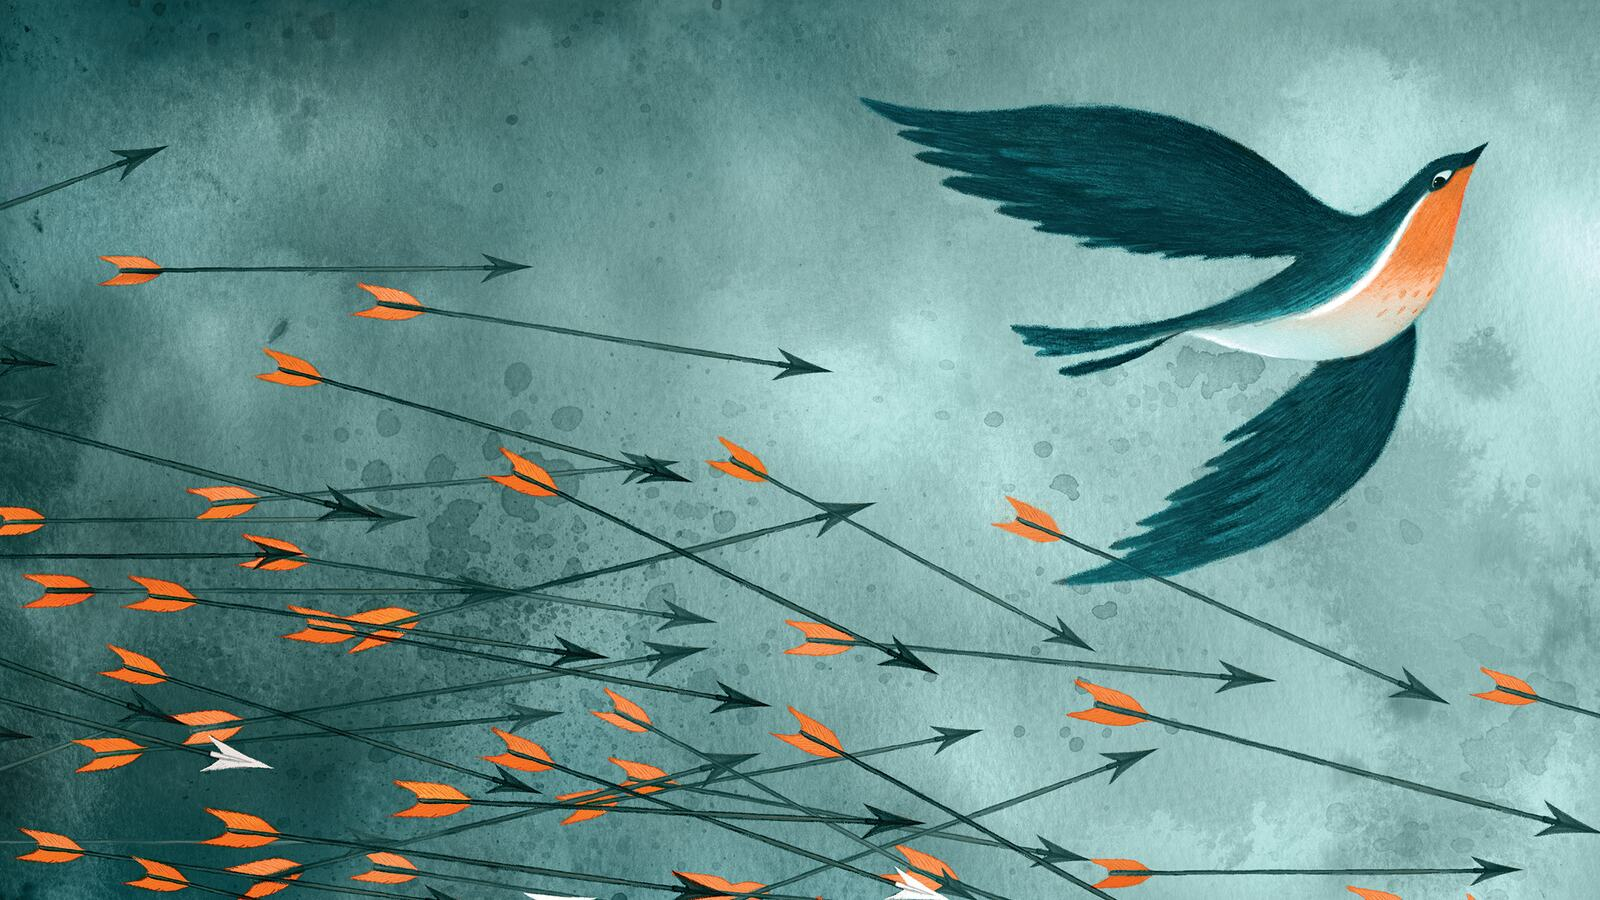 Illustration of a bird escaping arrows in the sky